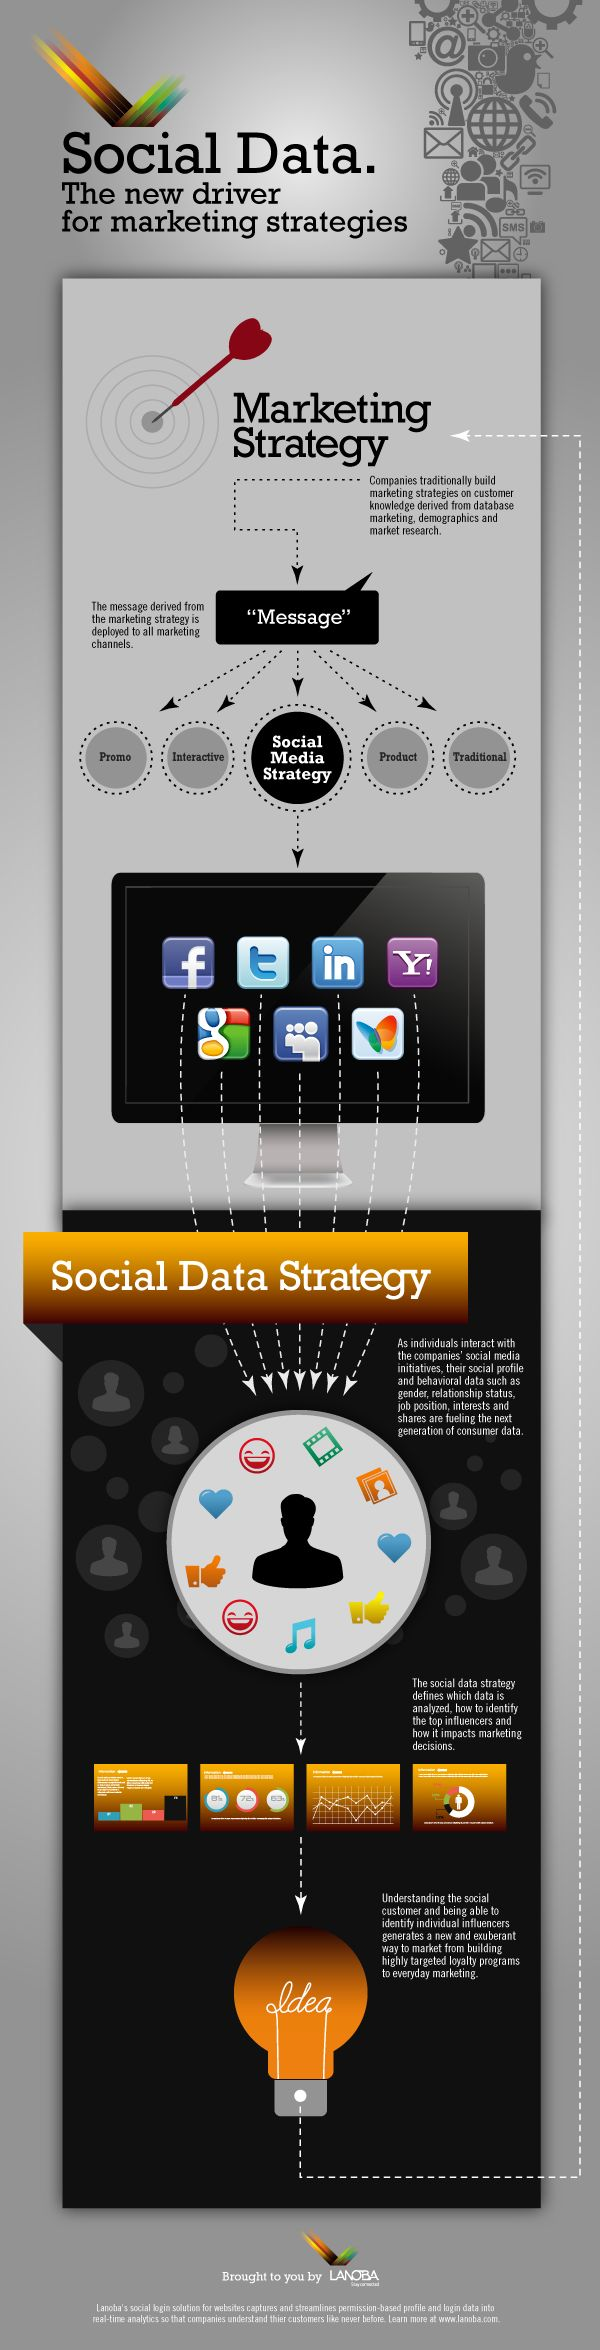 Social Data. The New Driver for Marketing Strategy.